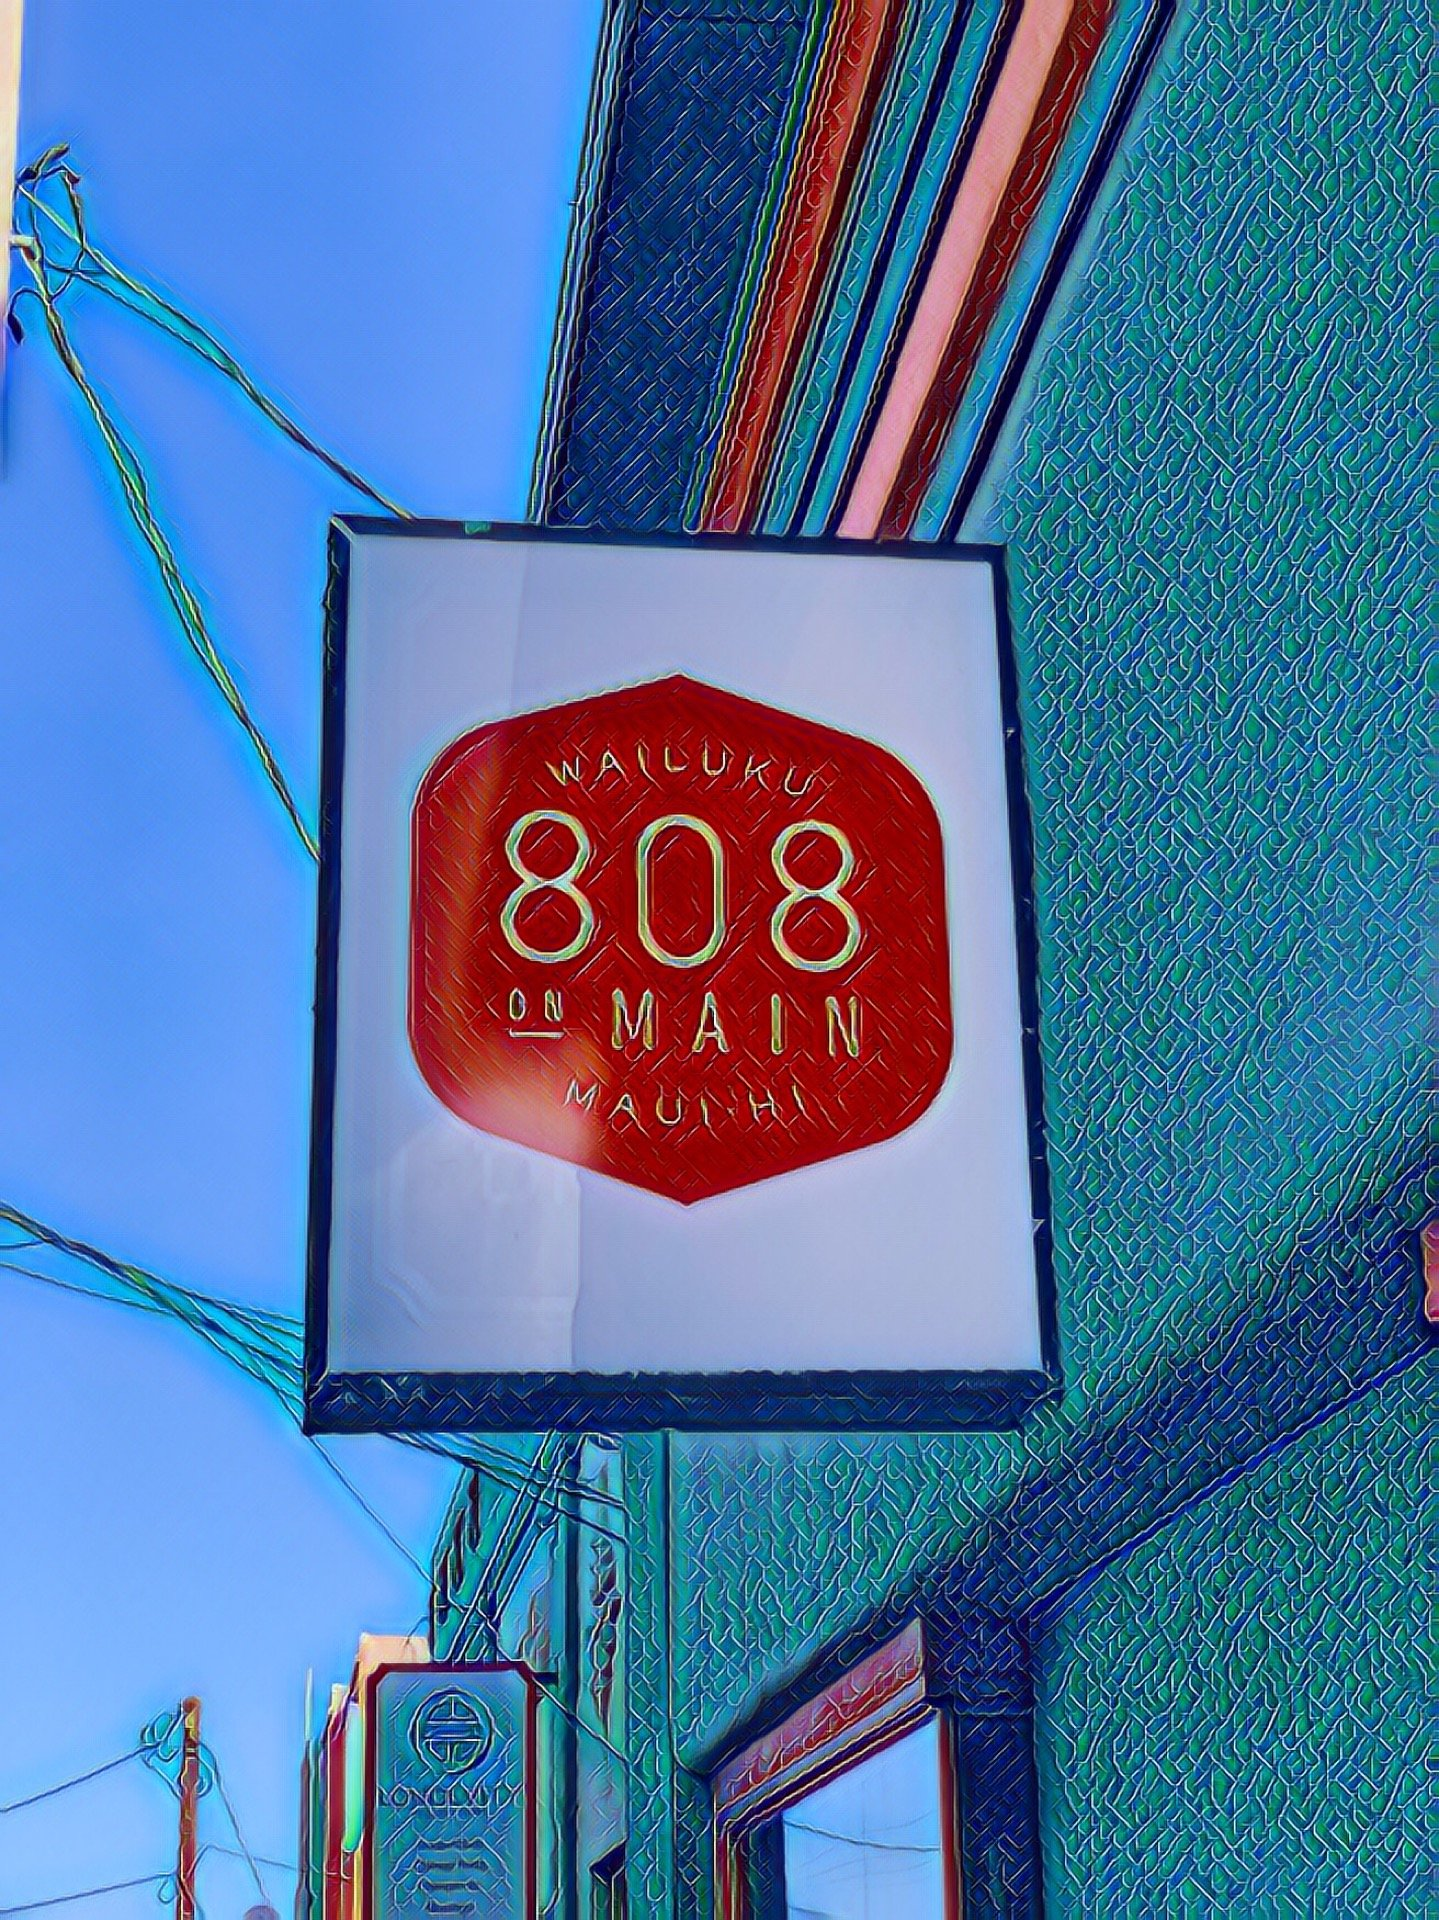 I'm at 808 on Main…